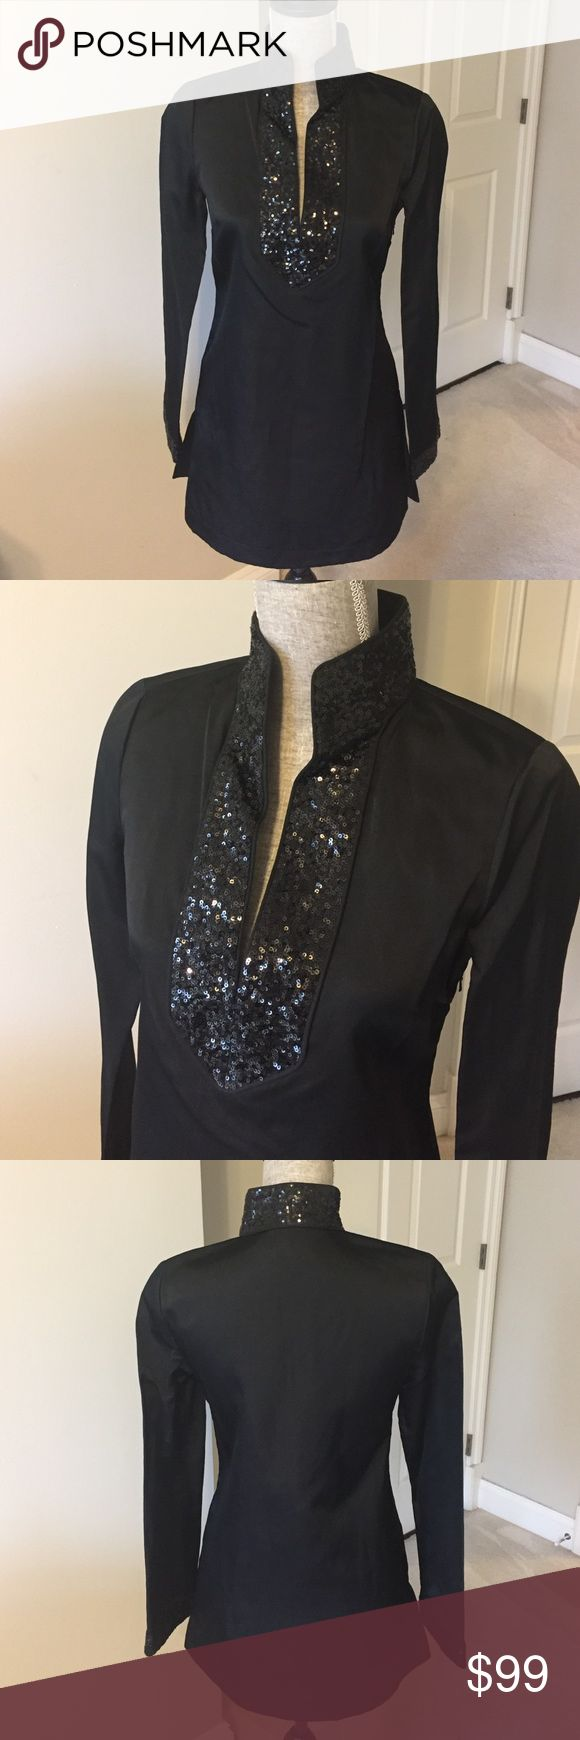 Tory Burch black tunic with sequin detailing Stunning classic Tory Burch tunic. 100% silk with sequin detailing at neckline and cuffs. Side zip closure.                            Measurements: Bust:34 inches Length:30 inches Tory Burch Tops